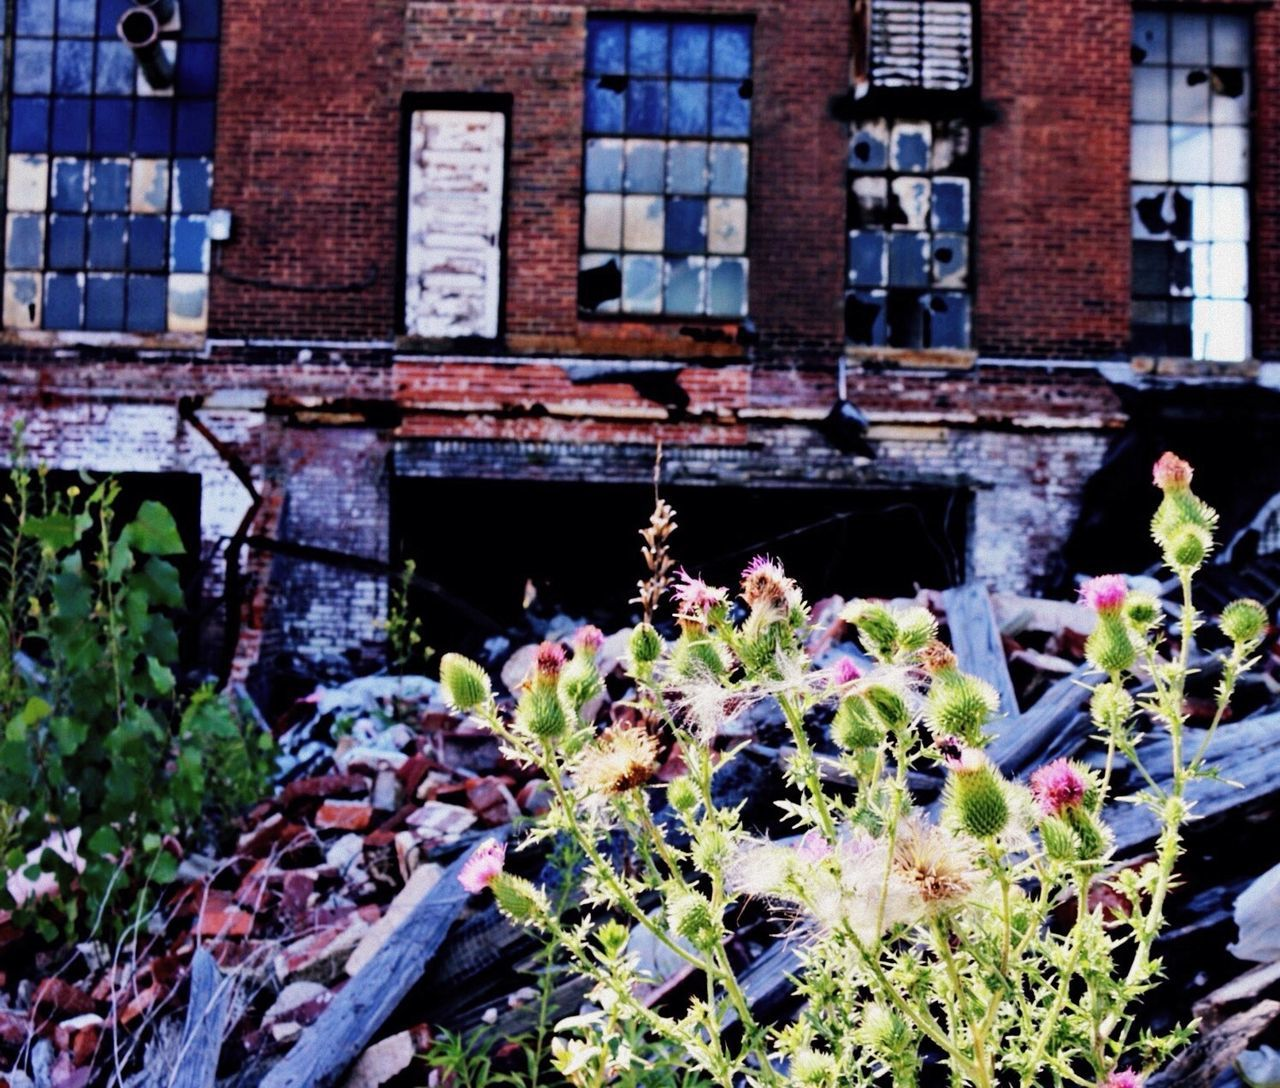 architecture, building exterior, built structure, plant, window, day, flower, outdoors, no people, growth, nature, fragility, close-up, window box